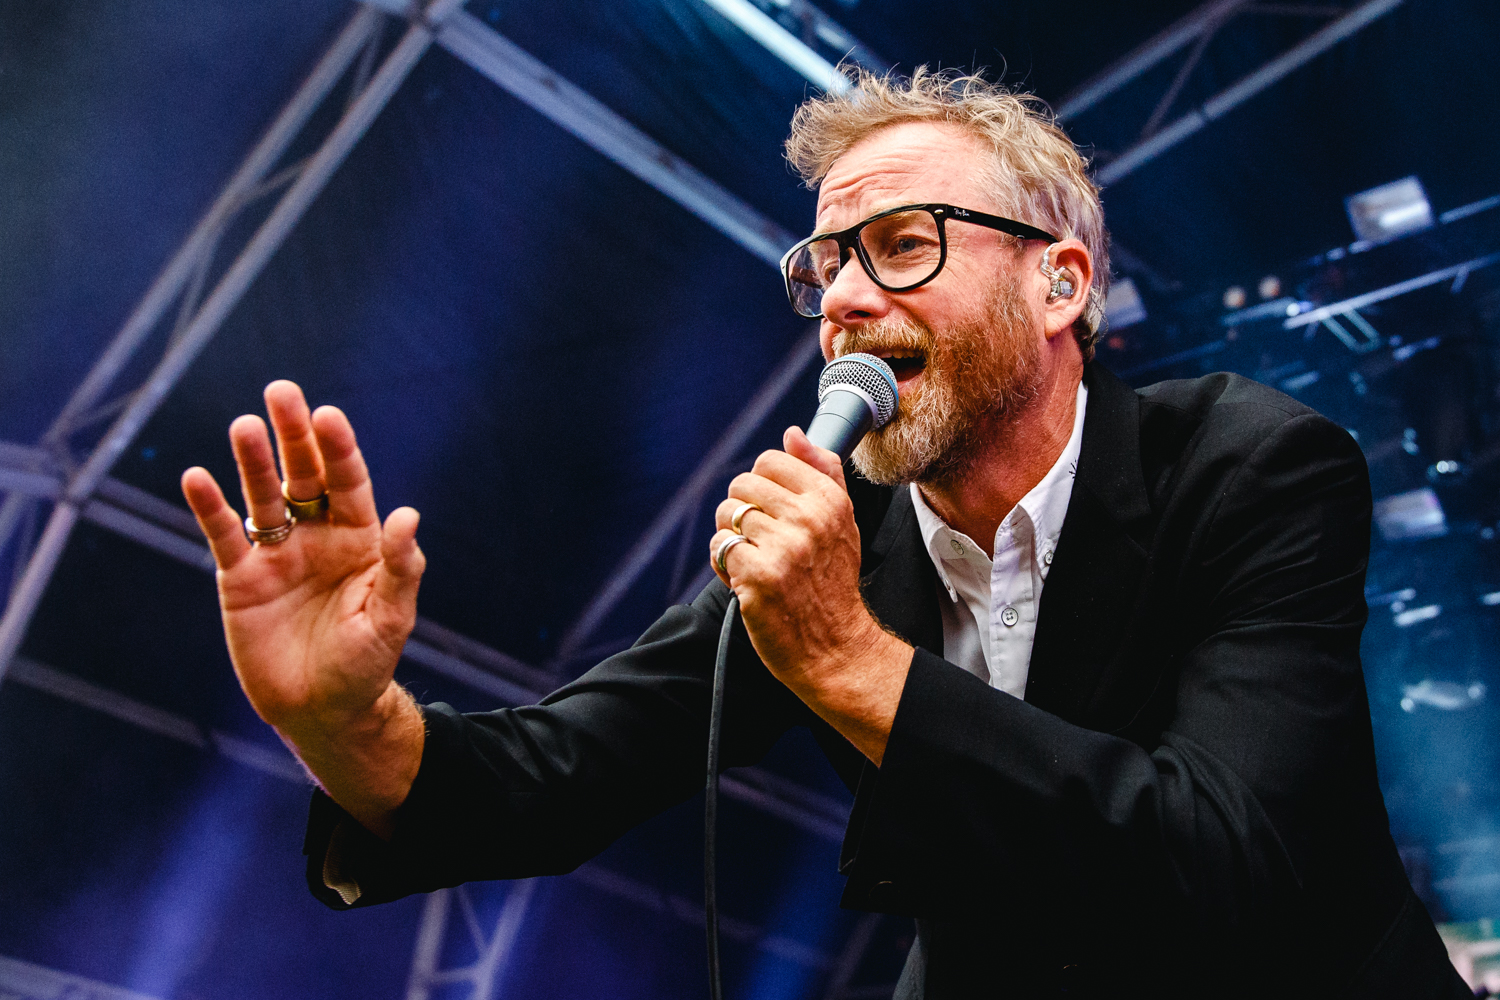 Live Review: The National at Sounds of the City, Castlefield Bowl, Manchester, 10/07/2019